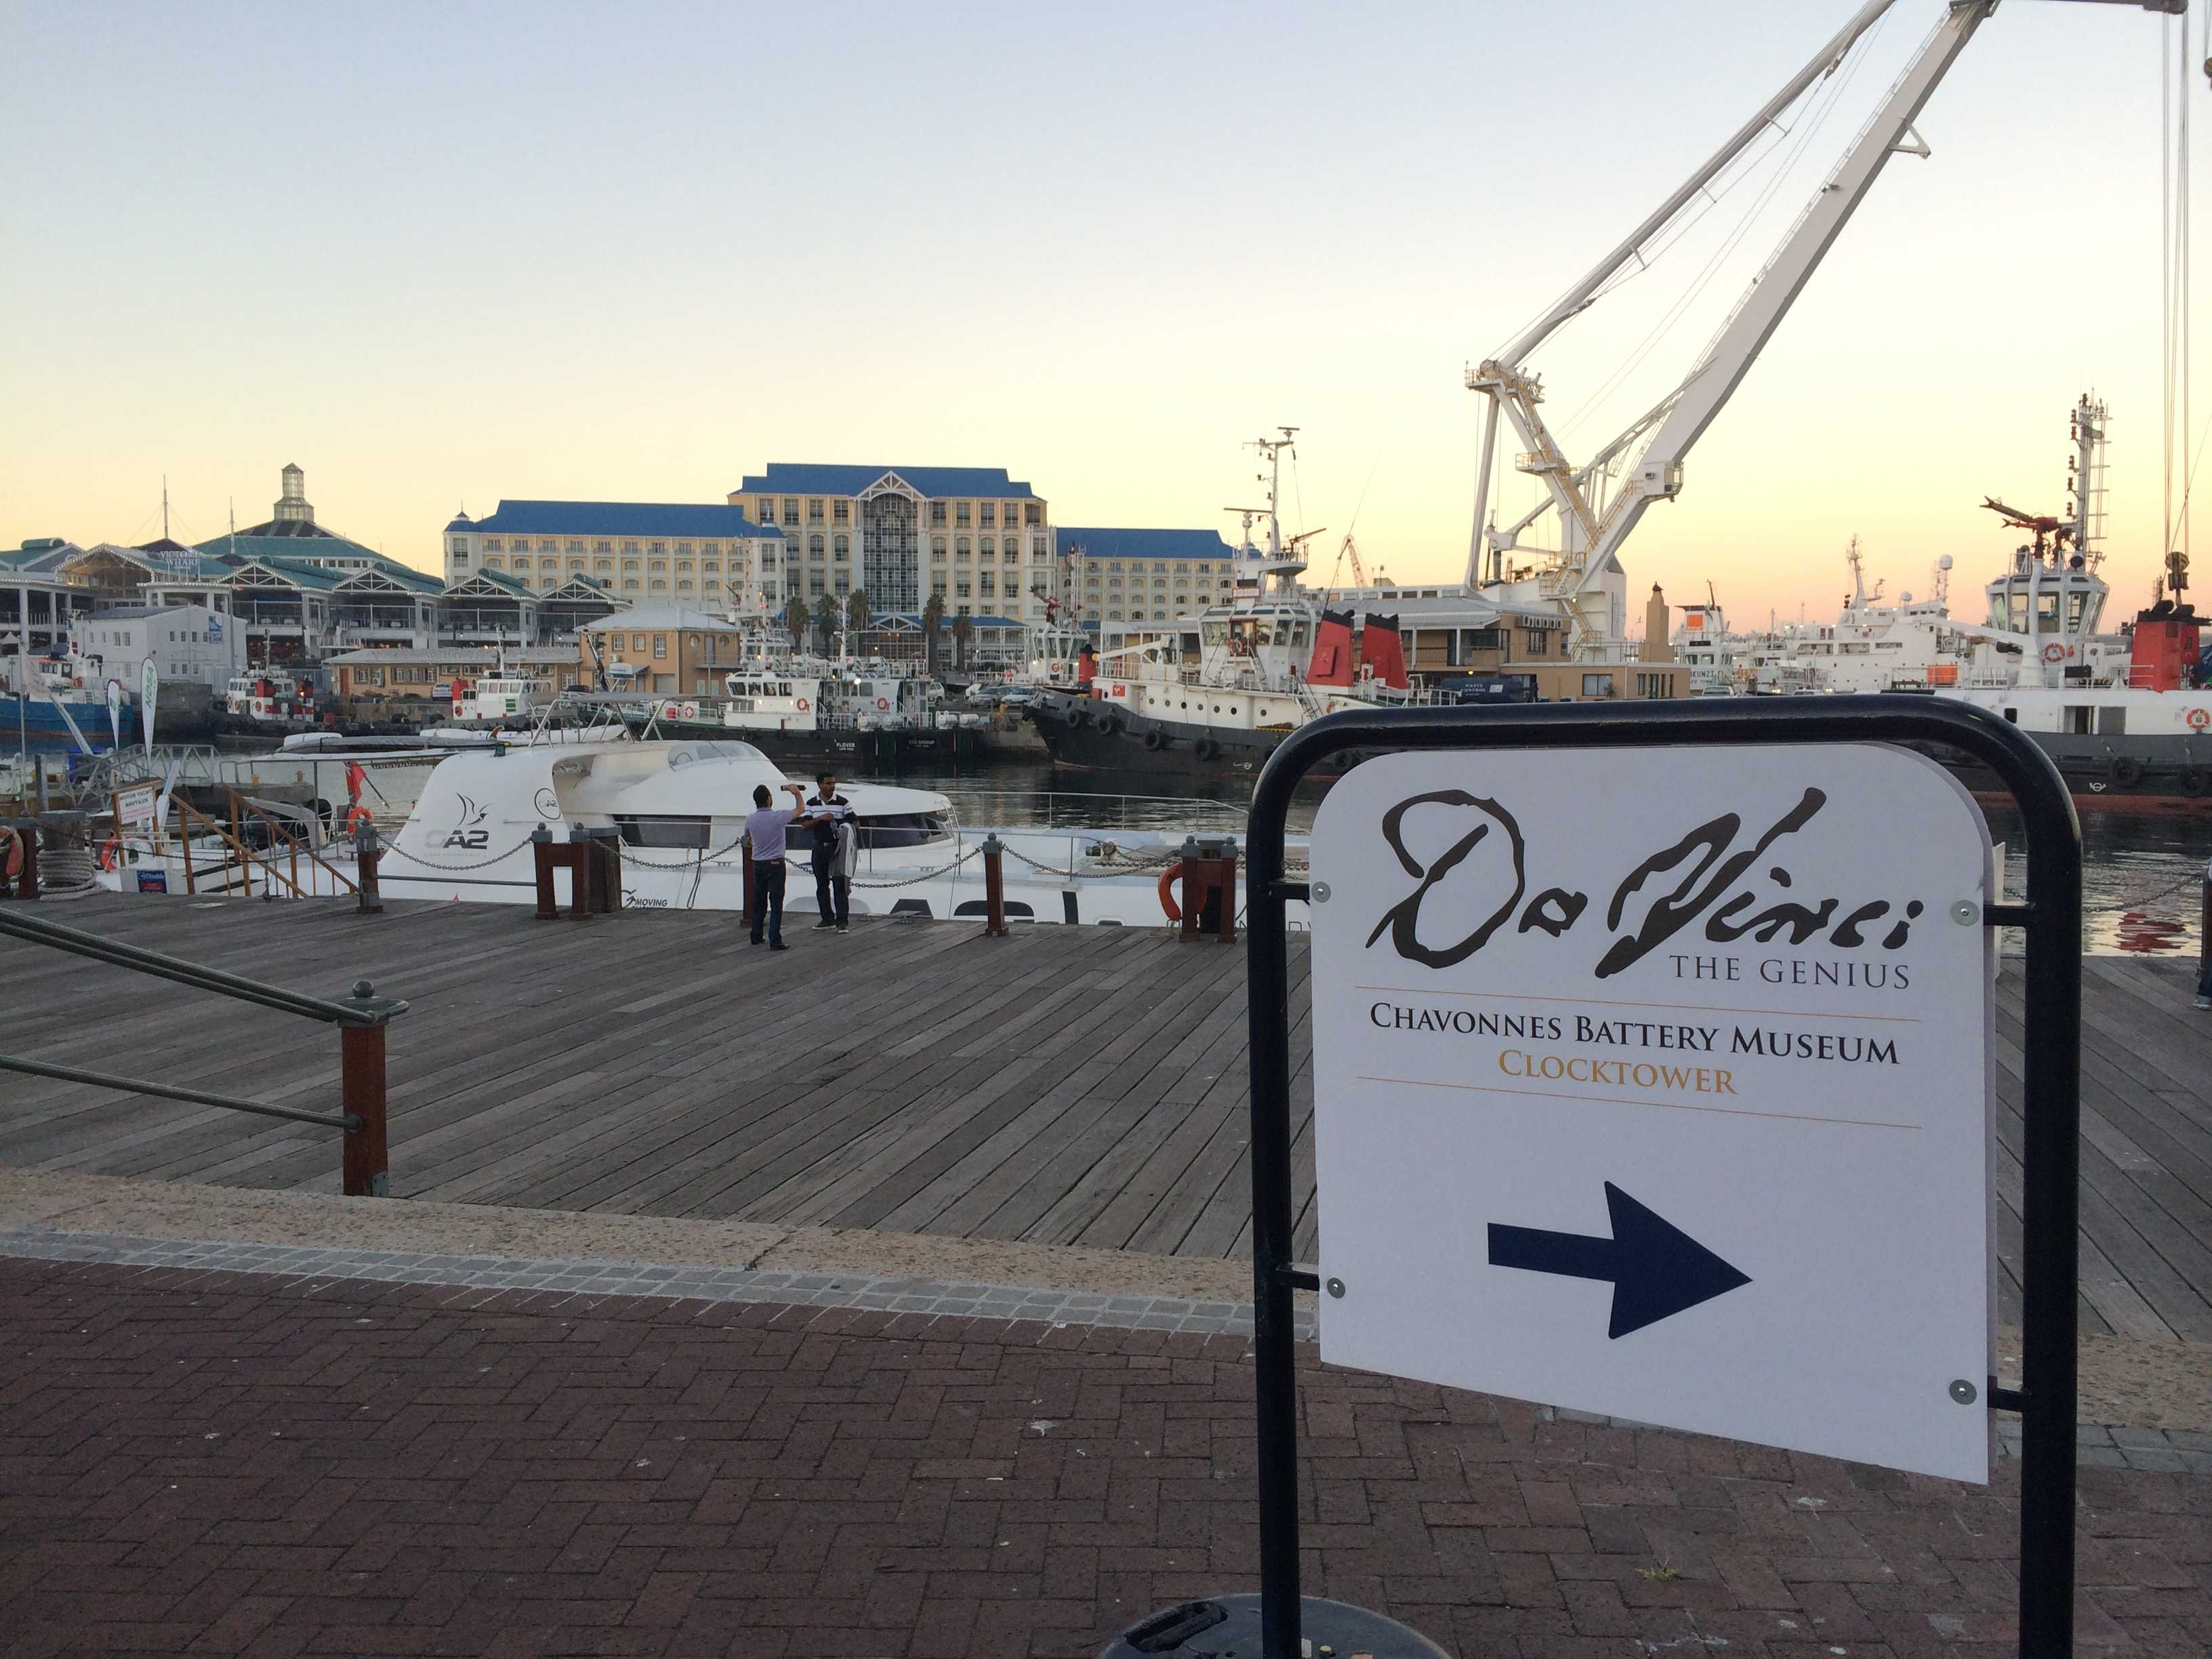 Victoria and Alfred Hotel across the dock at dusk with crane and white sign